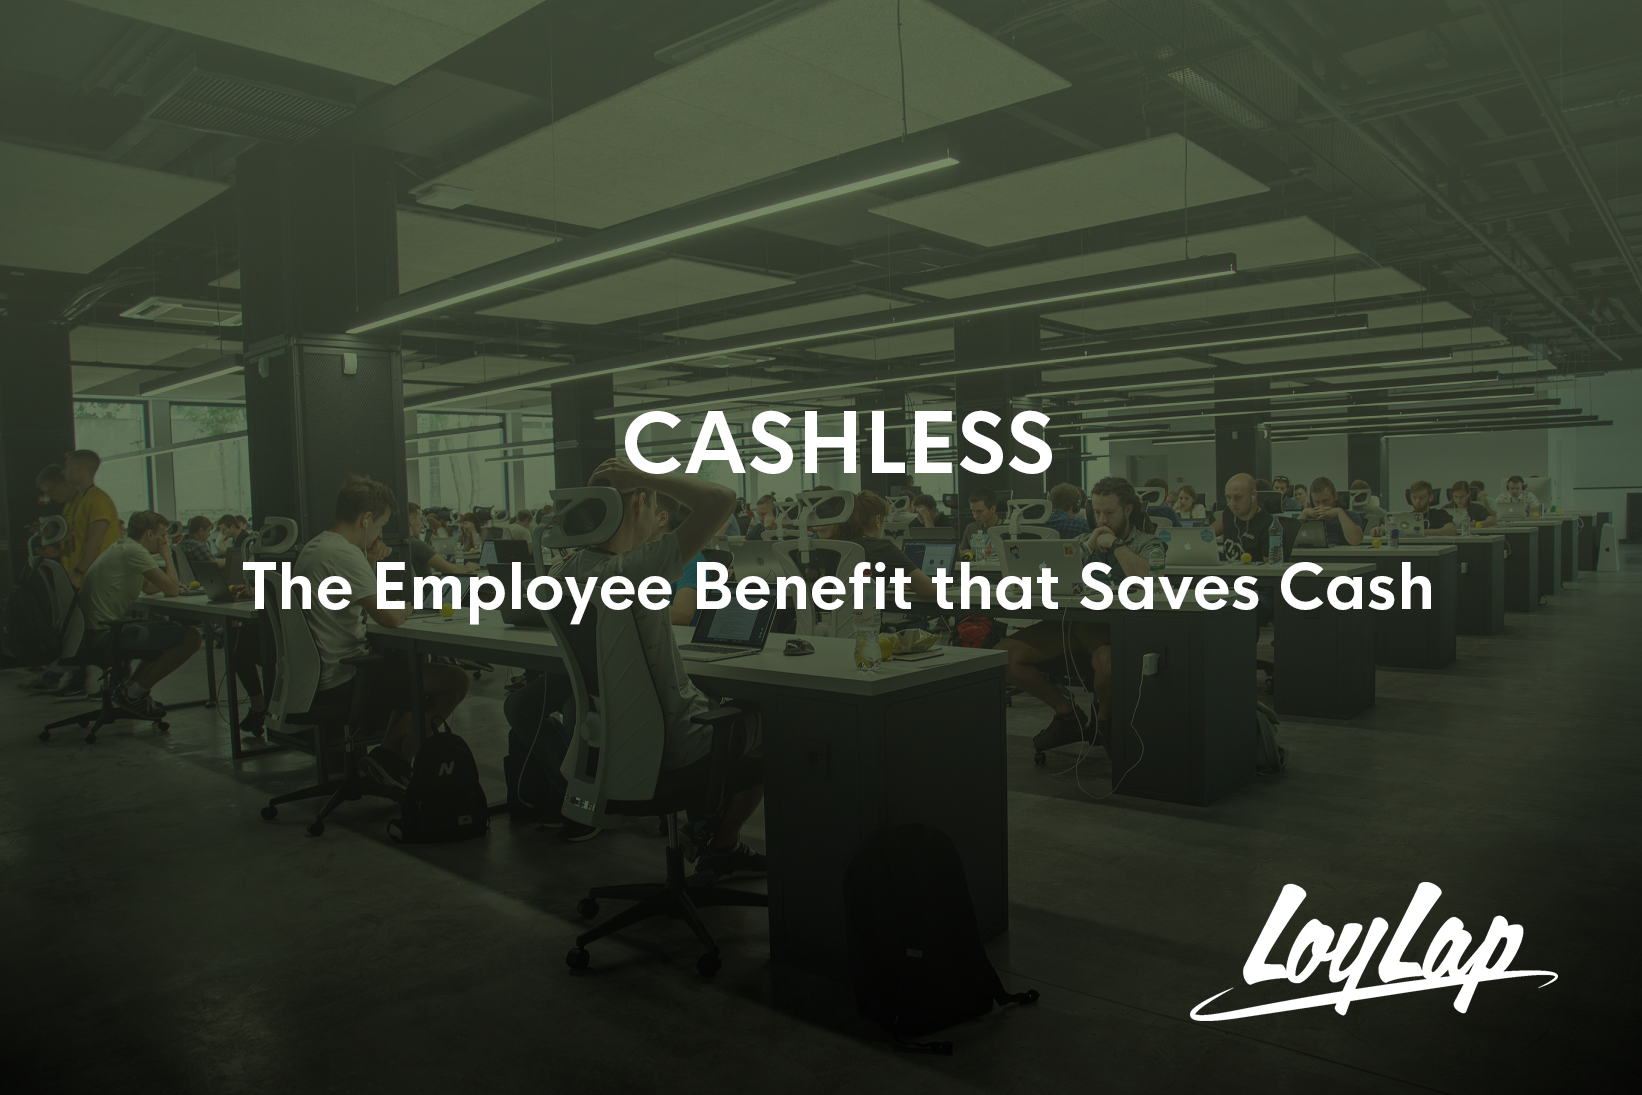 Cashless: The Employee Benefit that Saves Cash